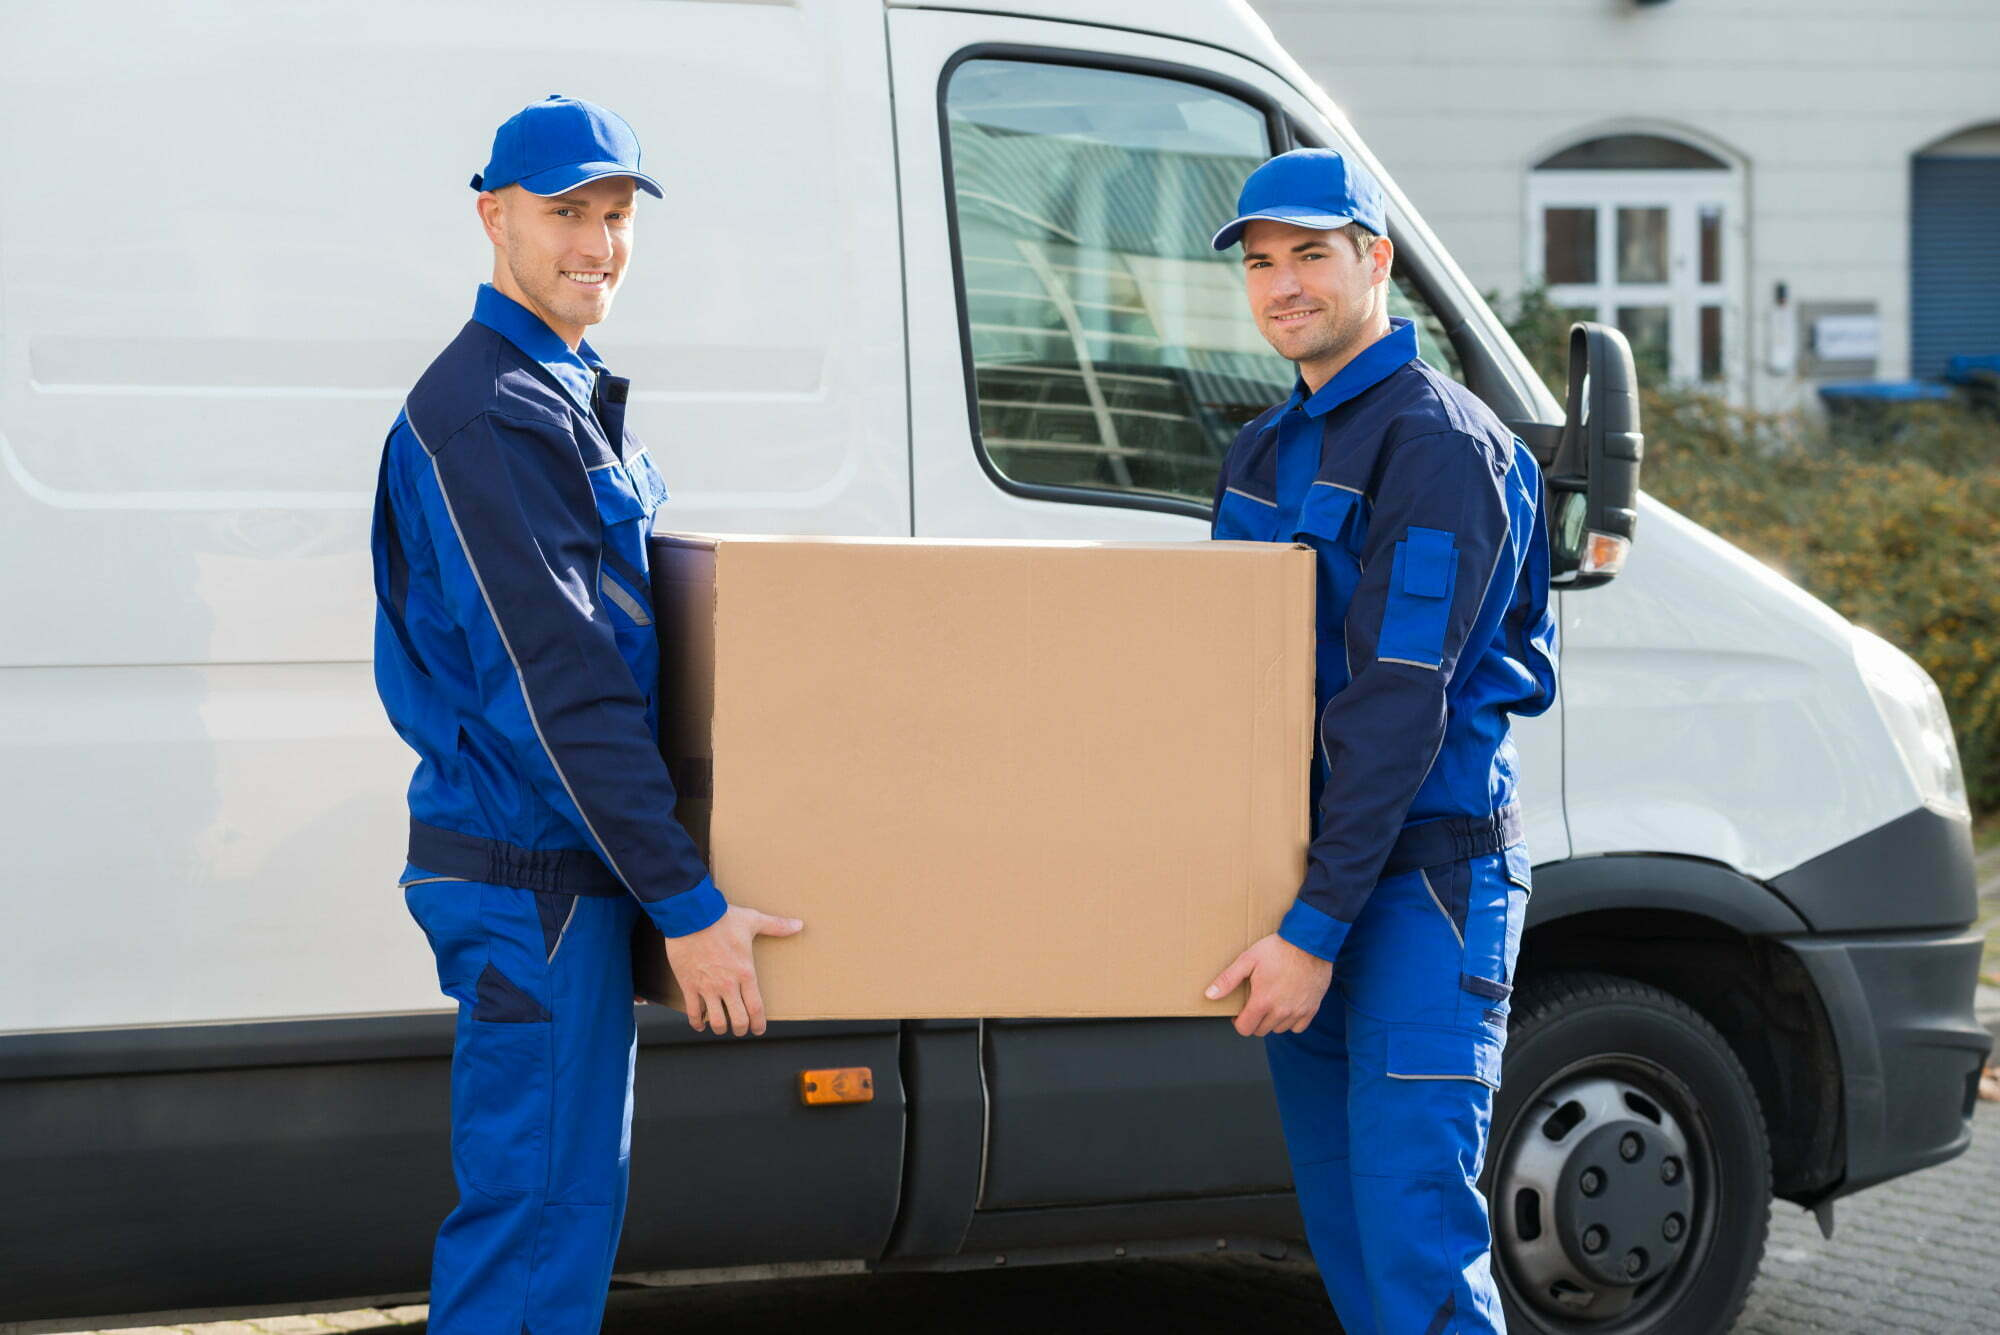 Chicago moving company employees holding a box next to a moving van